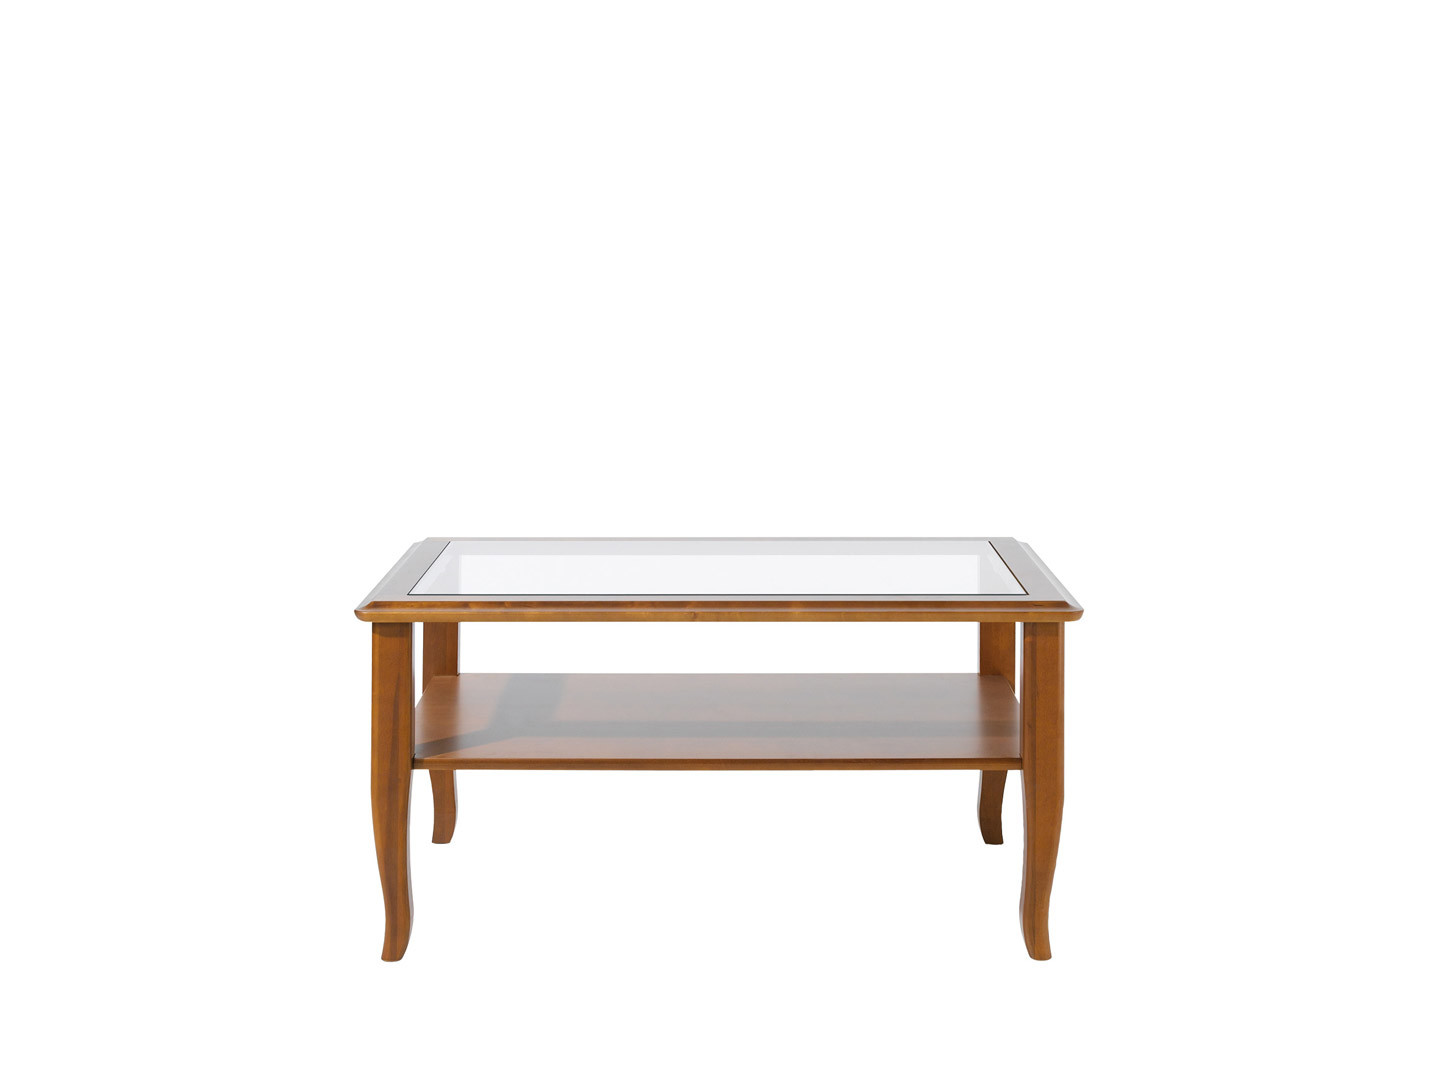 Coffee table orland 60cm x 52 5cm x 105cm furniture for Table induction 71 x 52